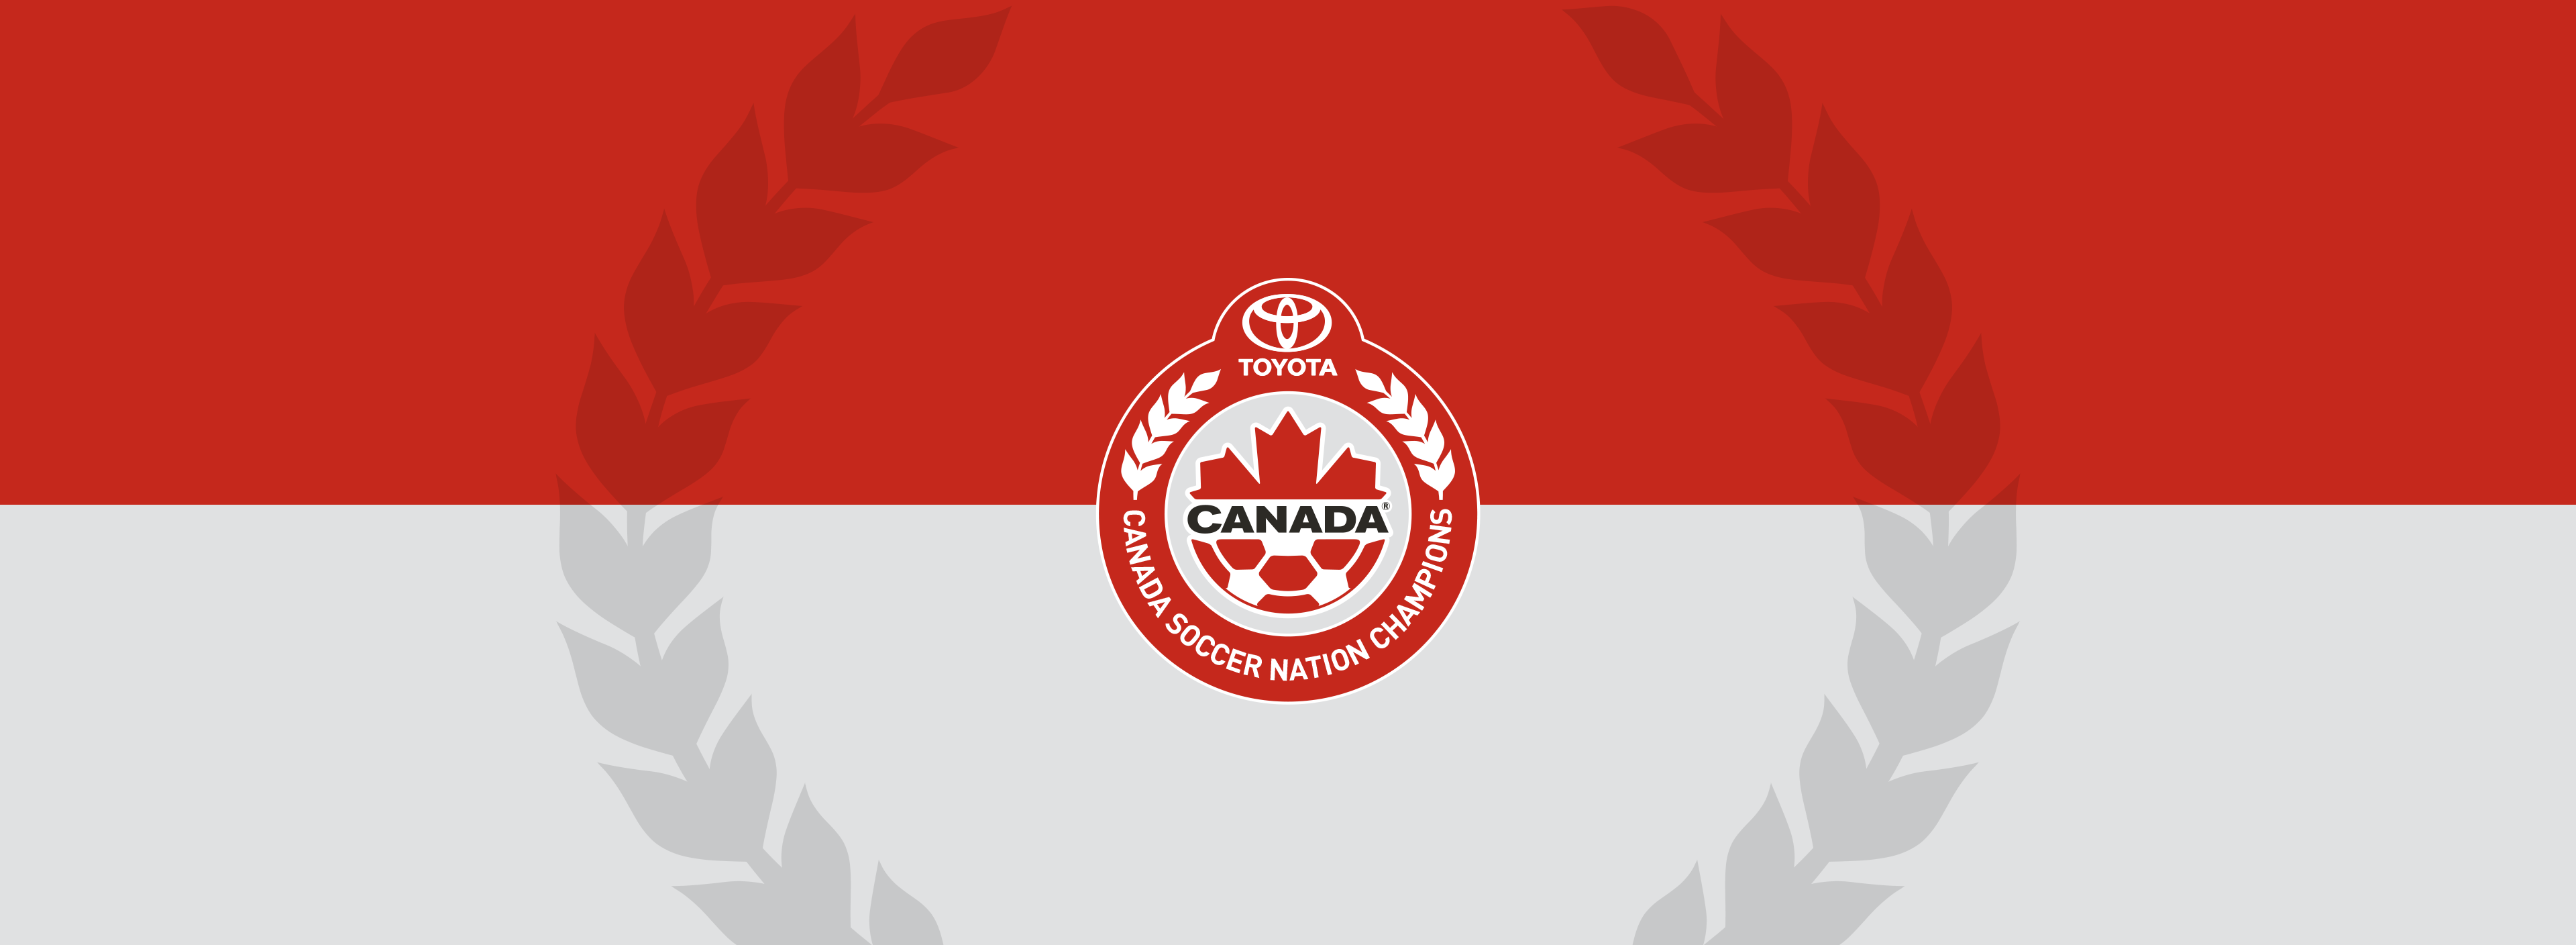 Canada Soccer Nation Champions